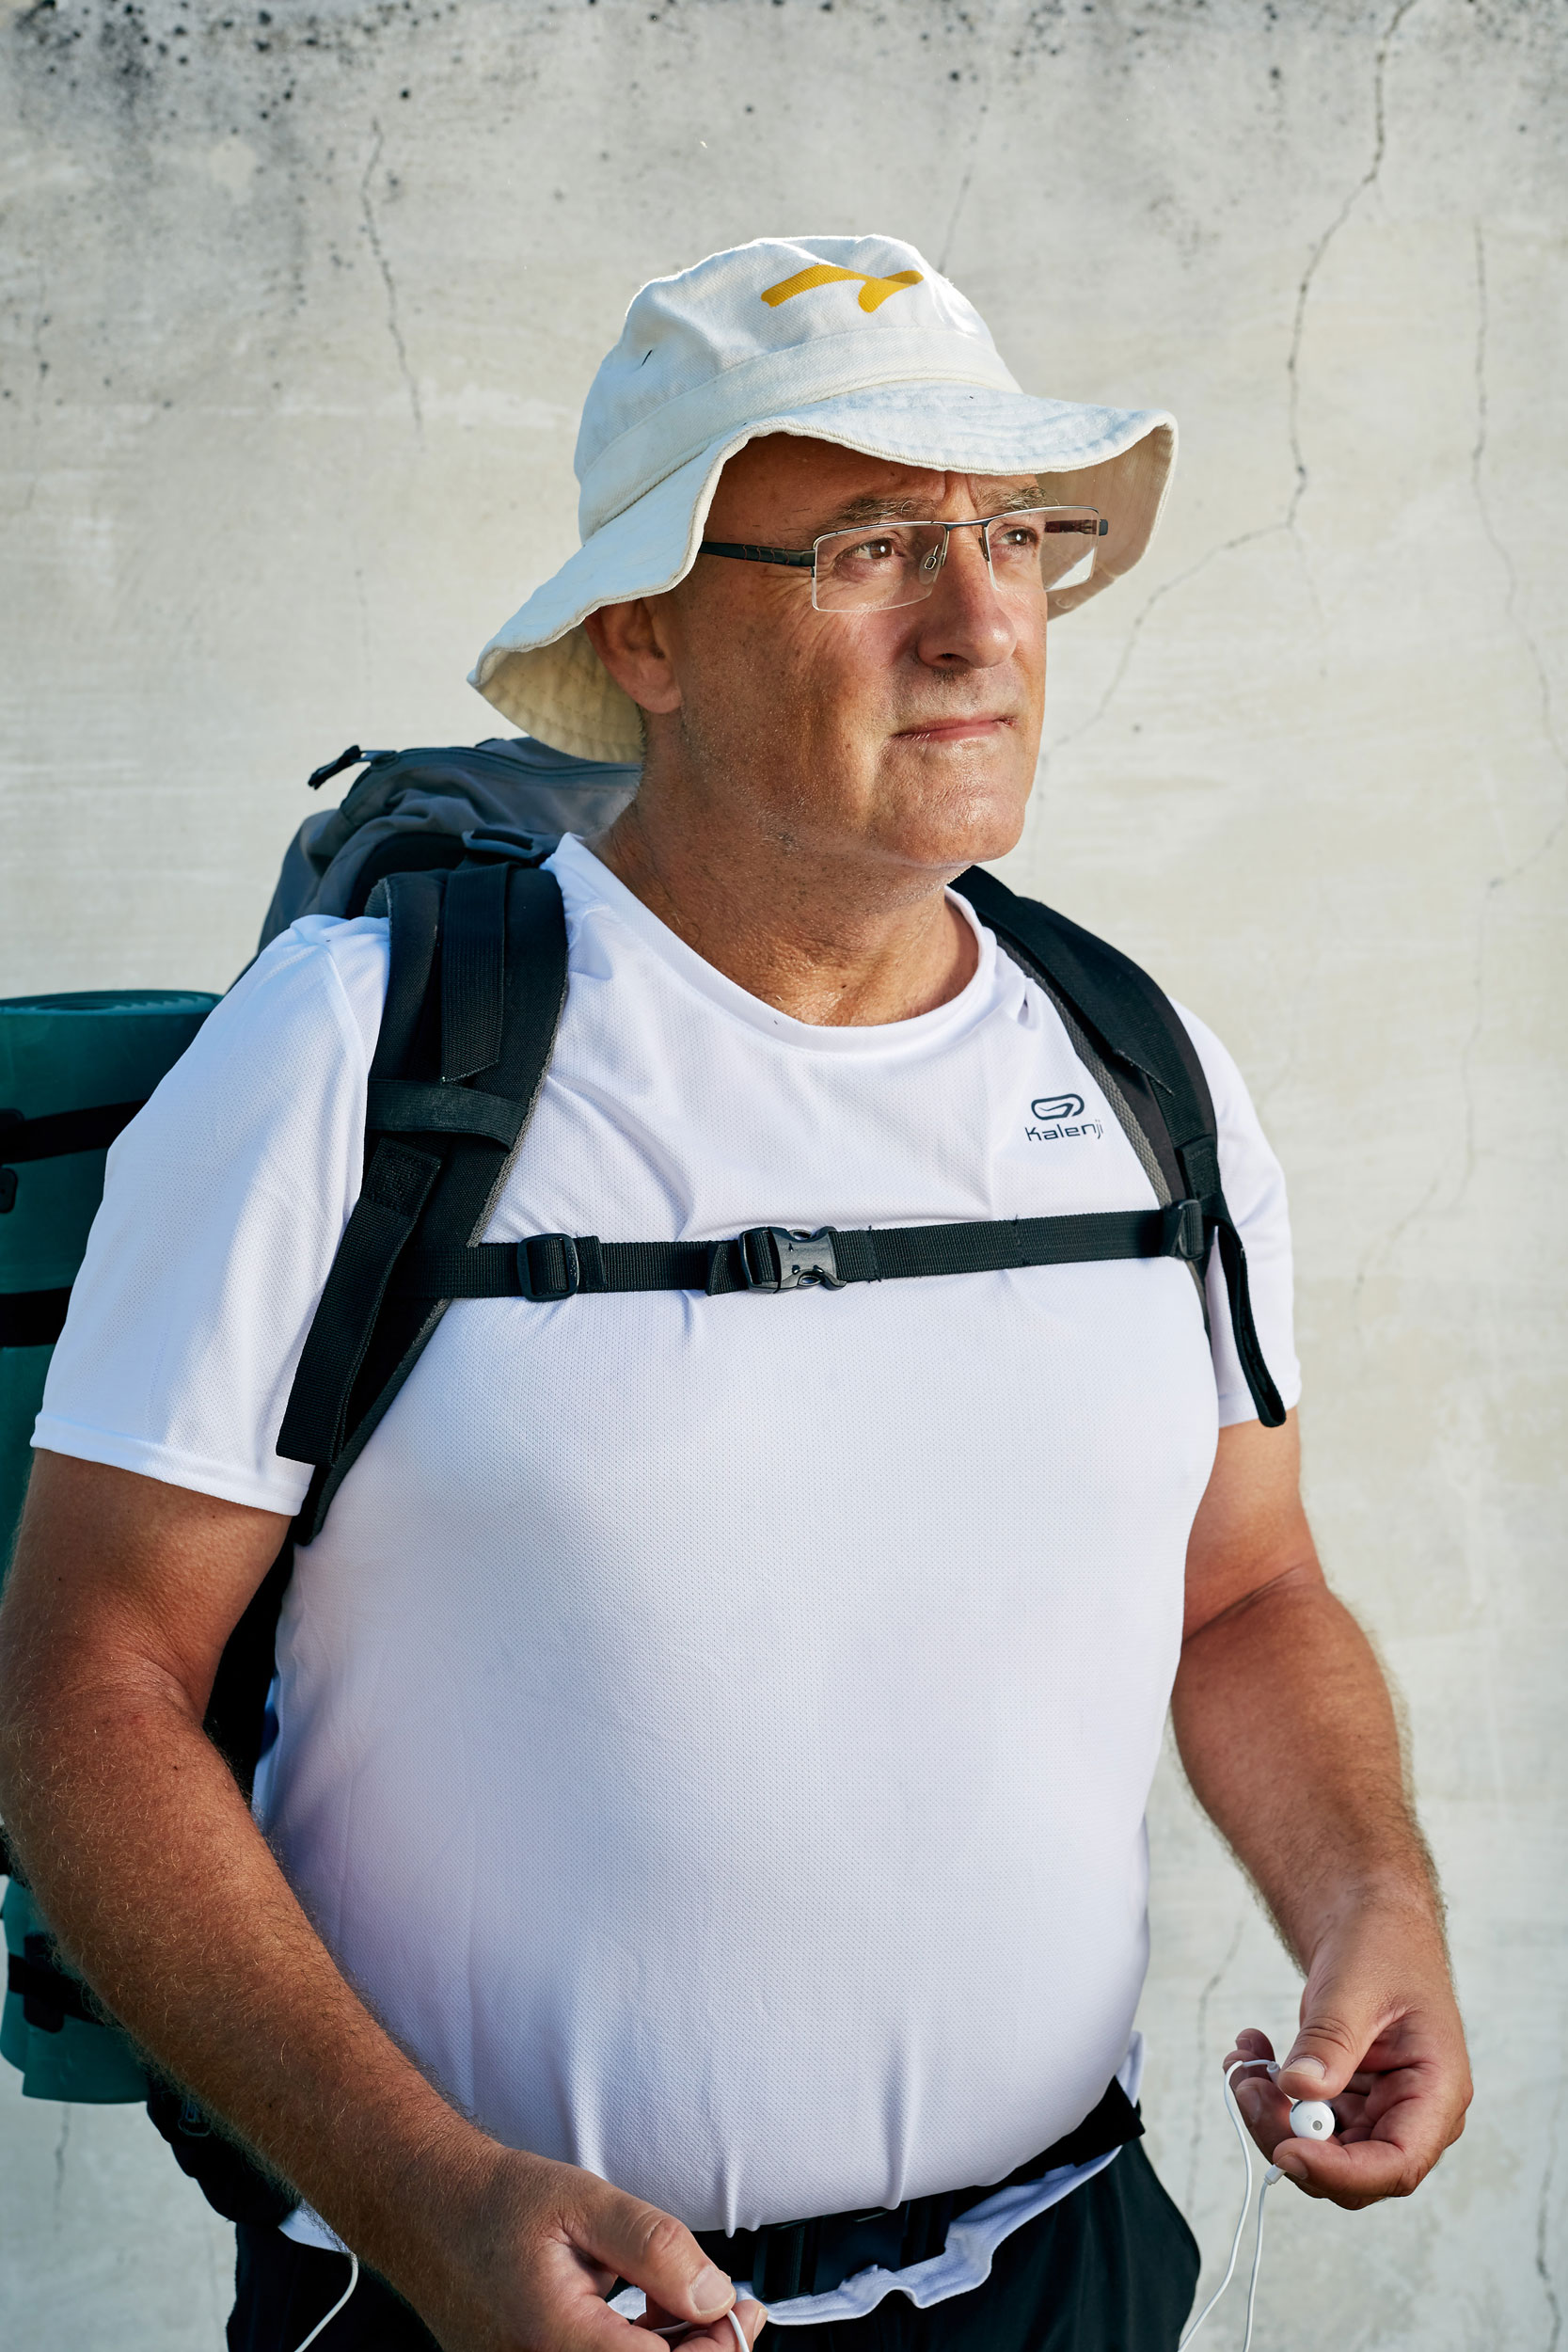 Camino pilgrim male with white shirt and hat looks off contemplating his journey by documentary portrait photographer Duncan Elliott